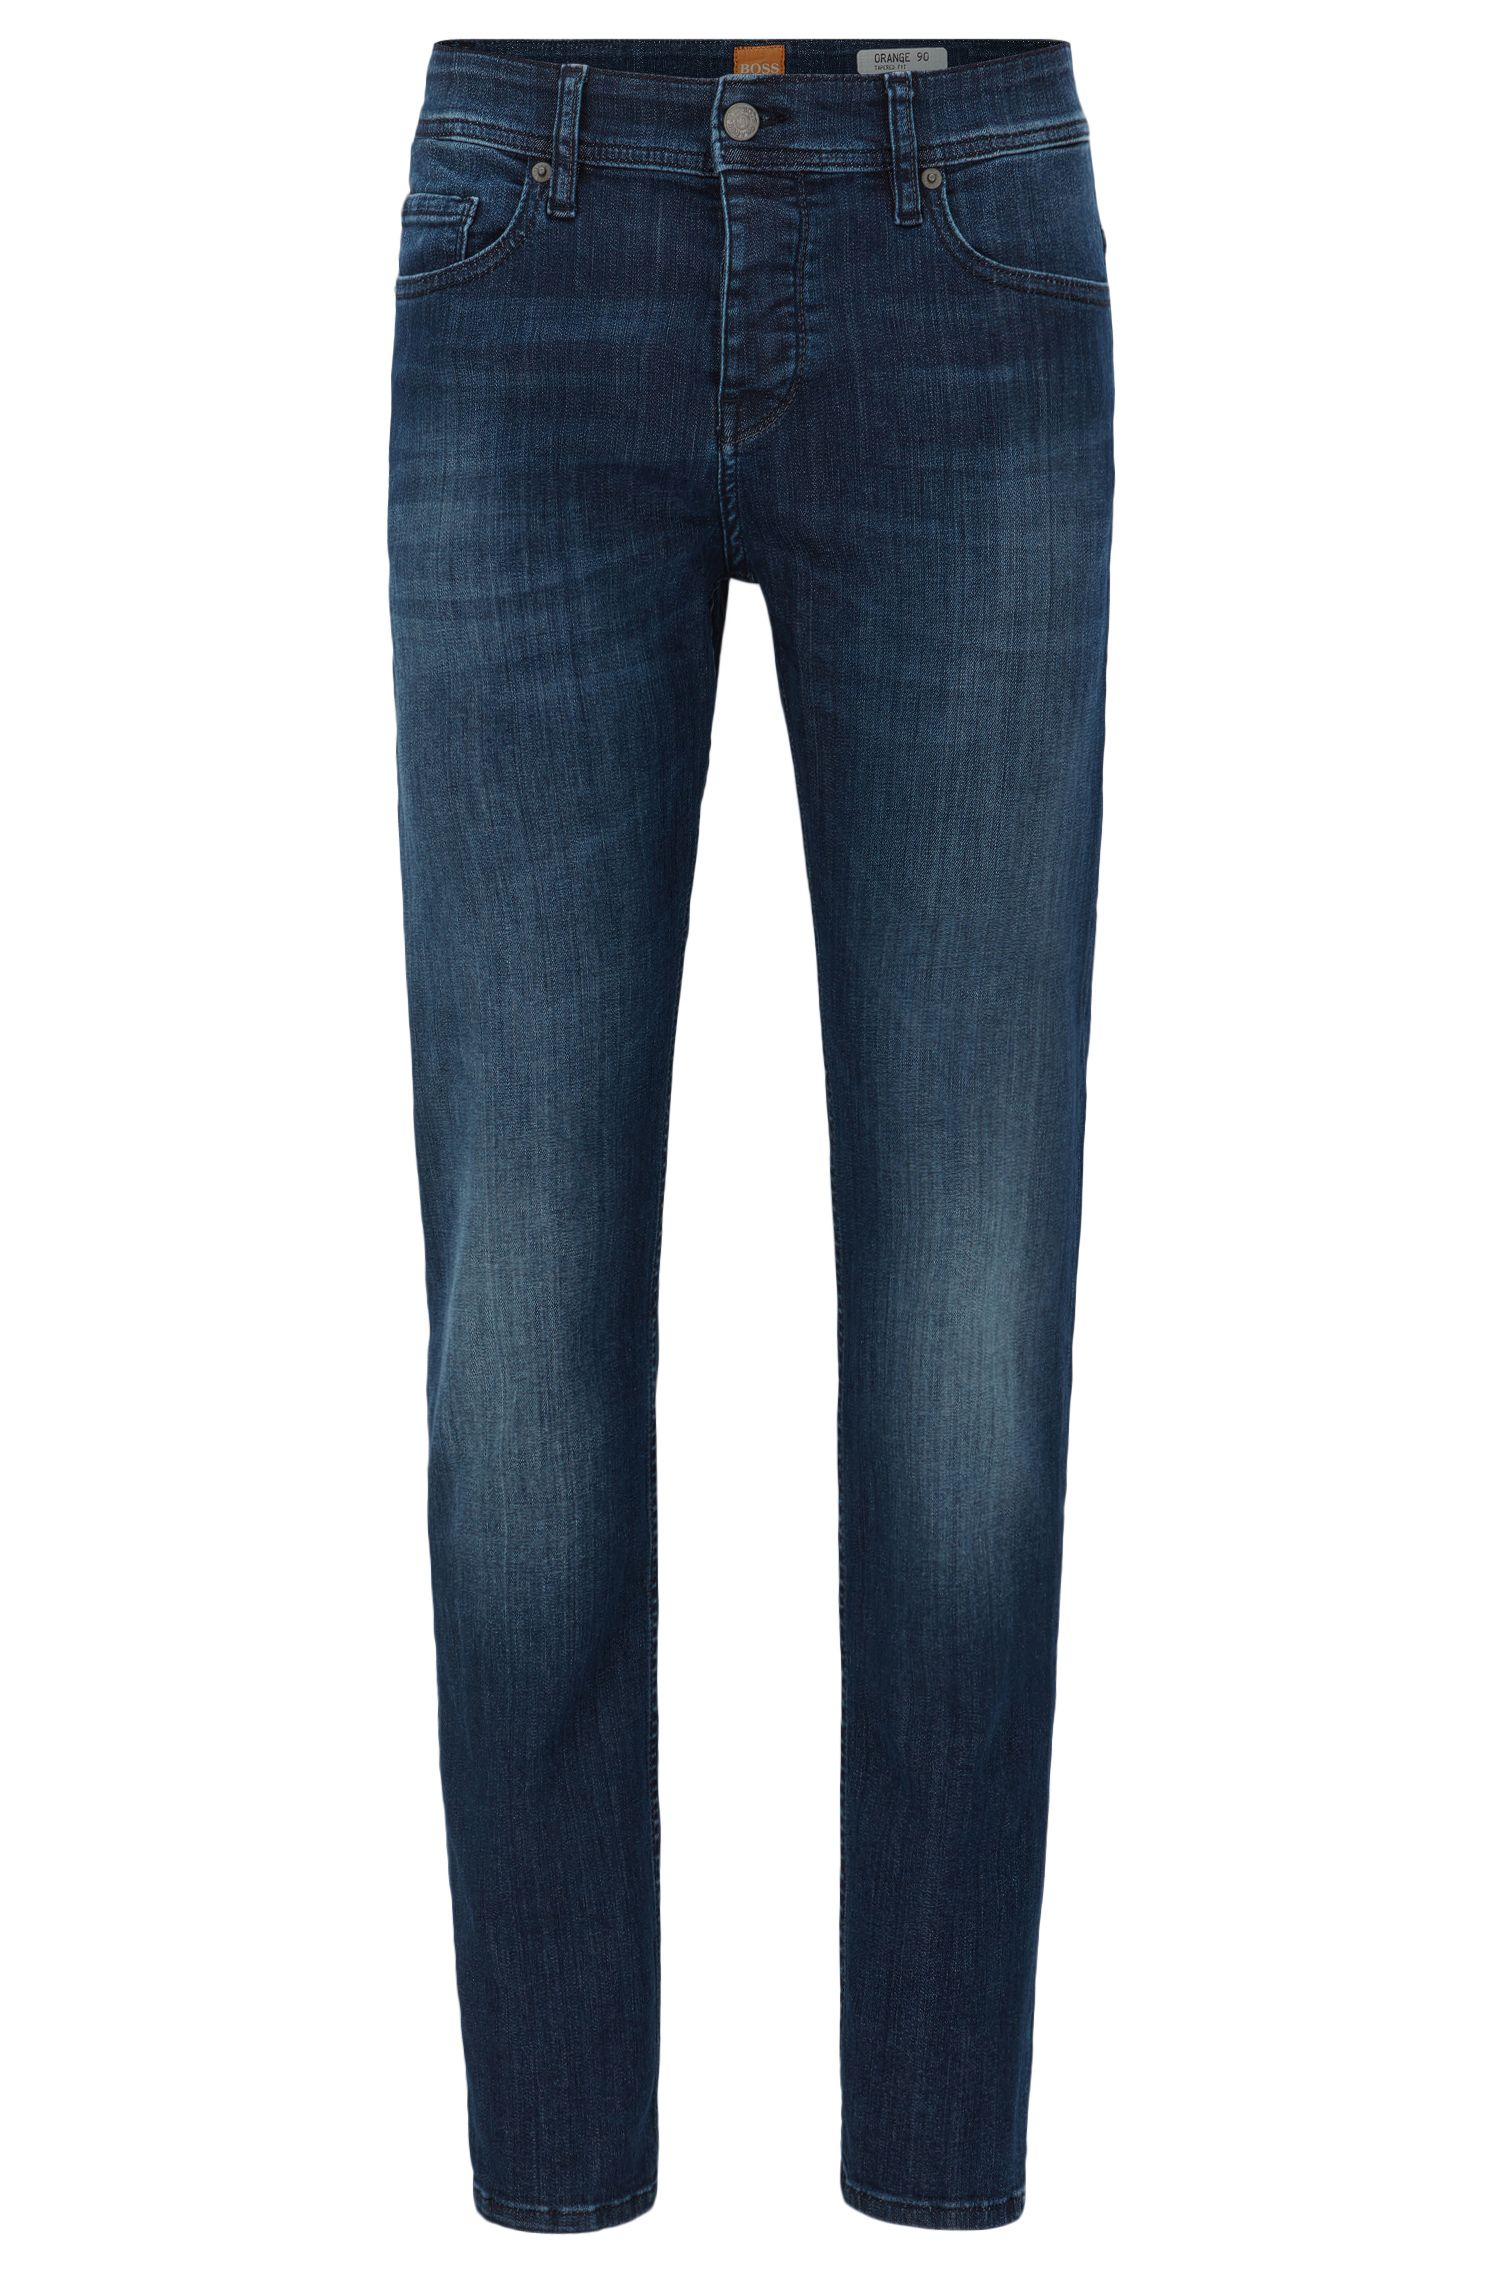 Super-stretch denim jeans in a tapered fit